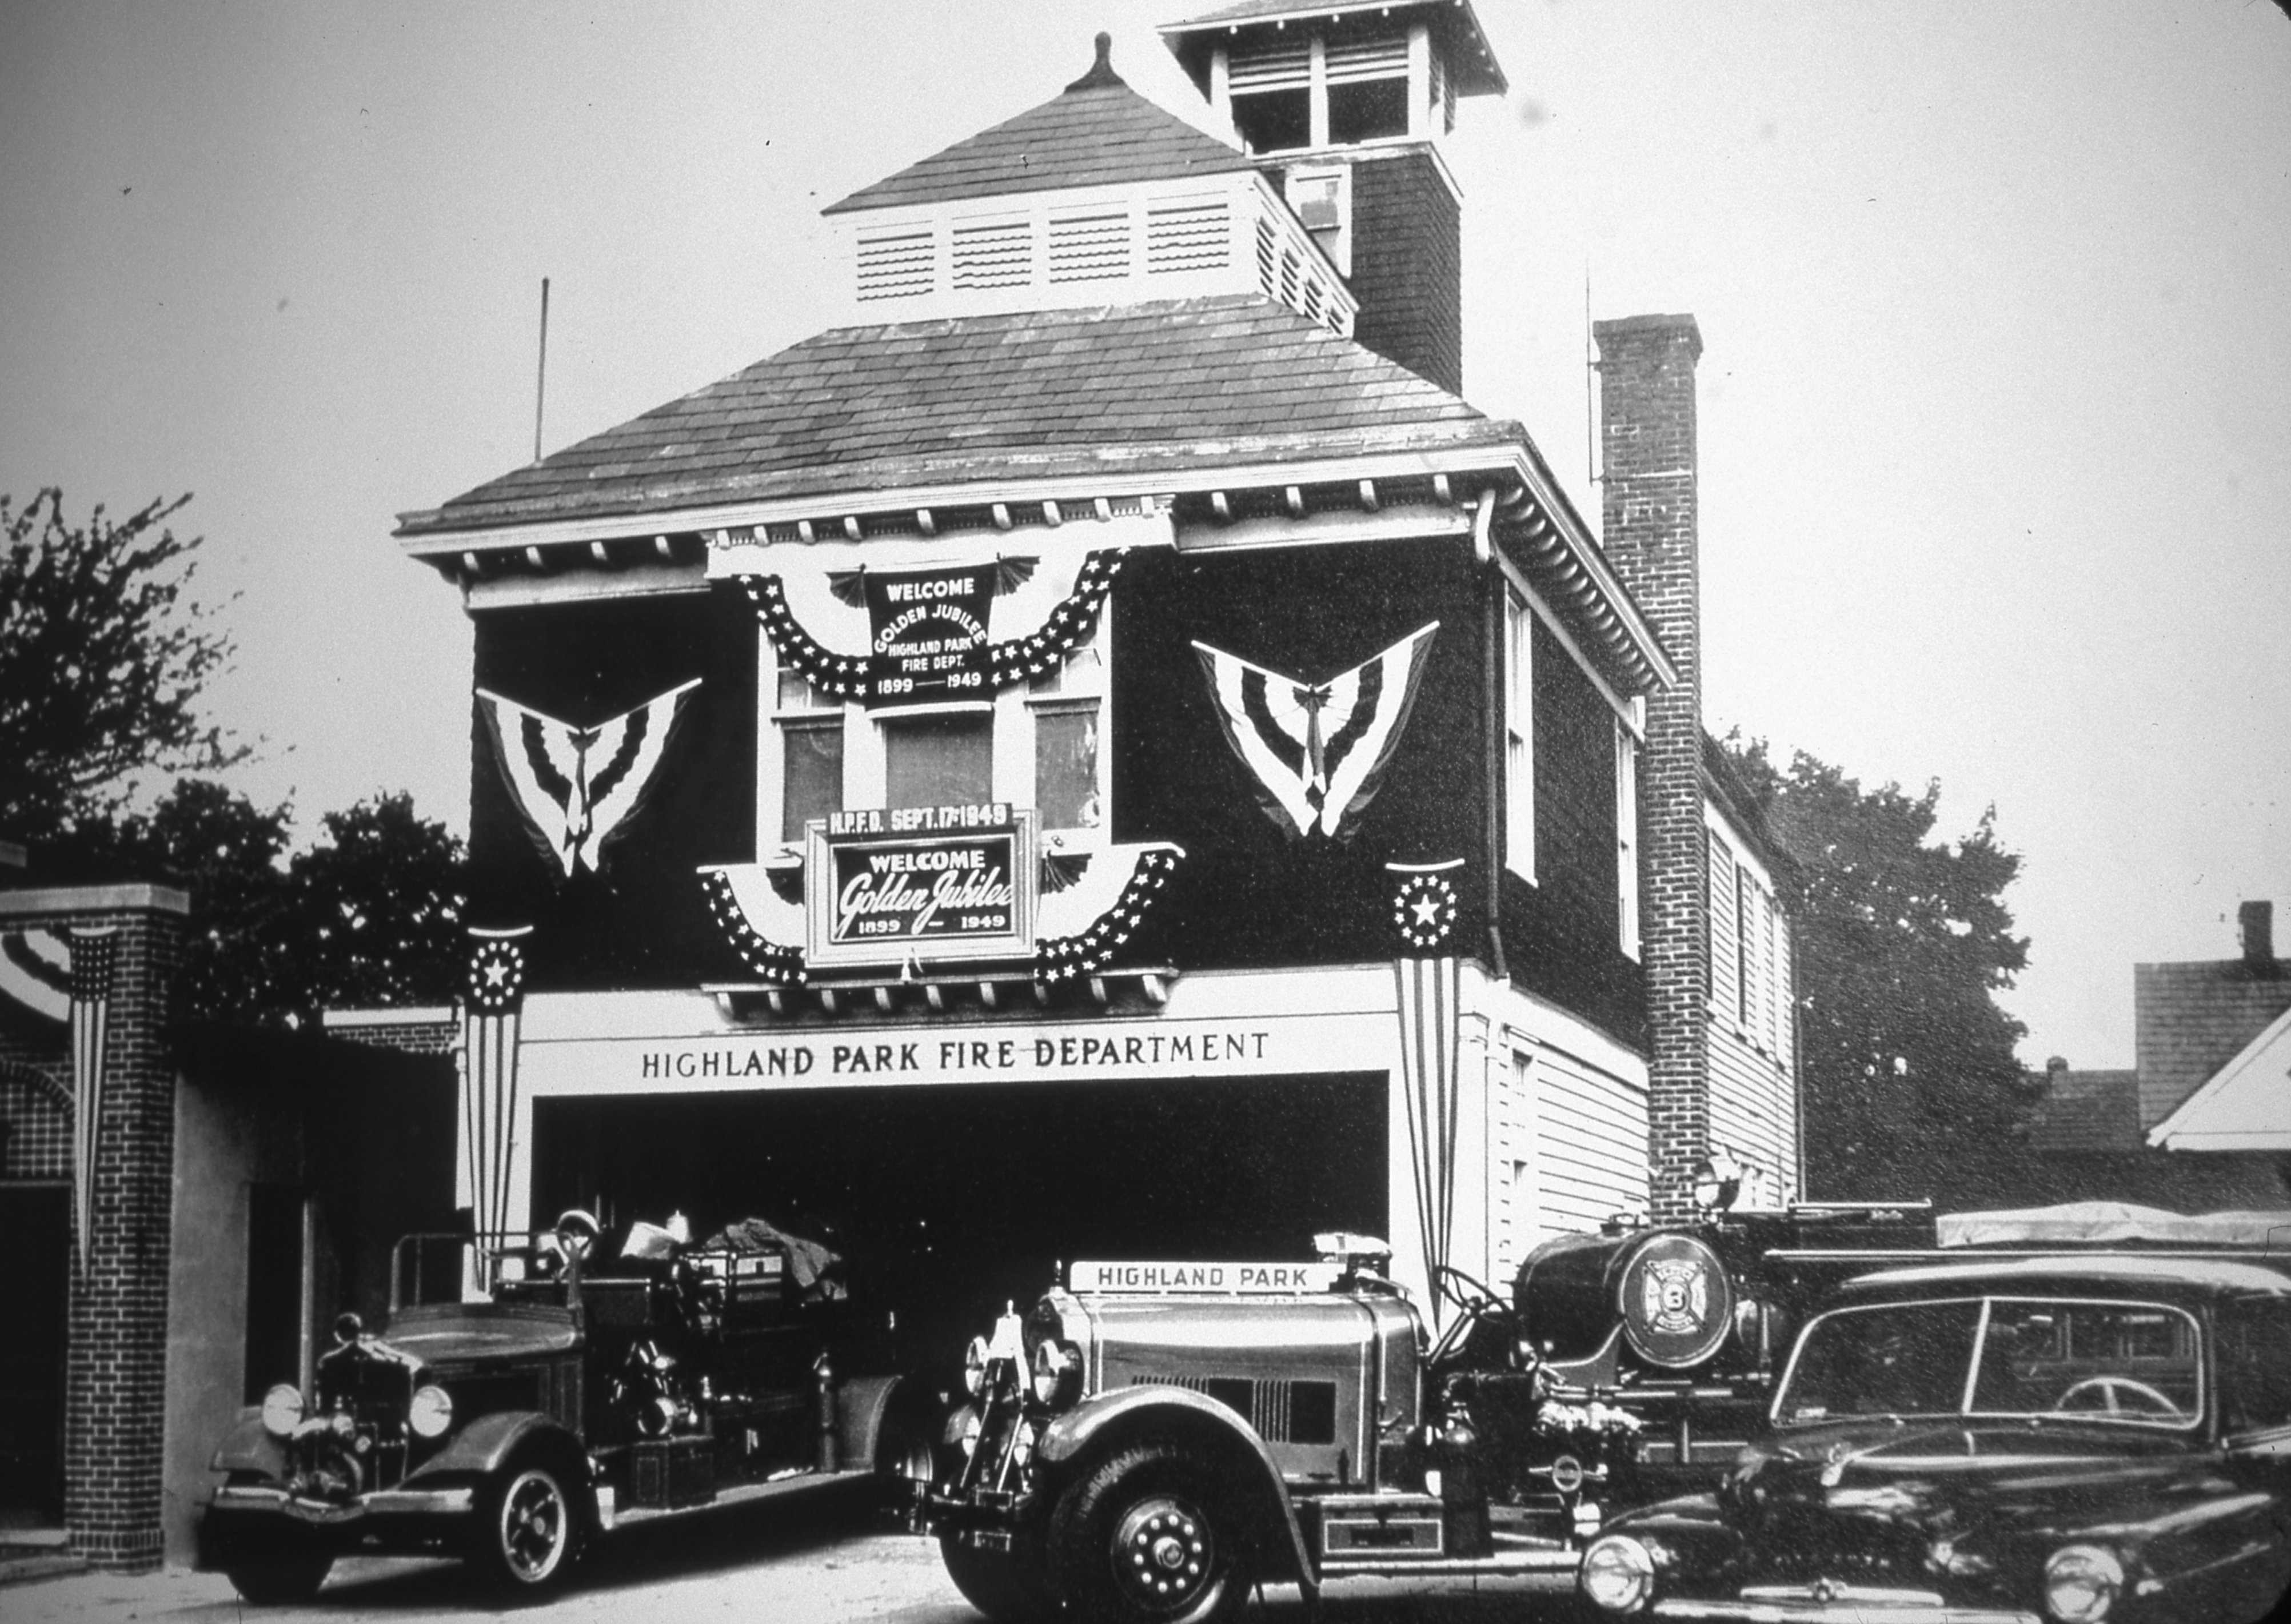 The firehouse in 1949 celebrating the department's 50th anniversary.